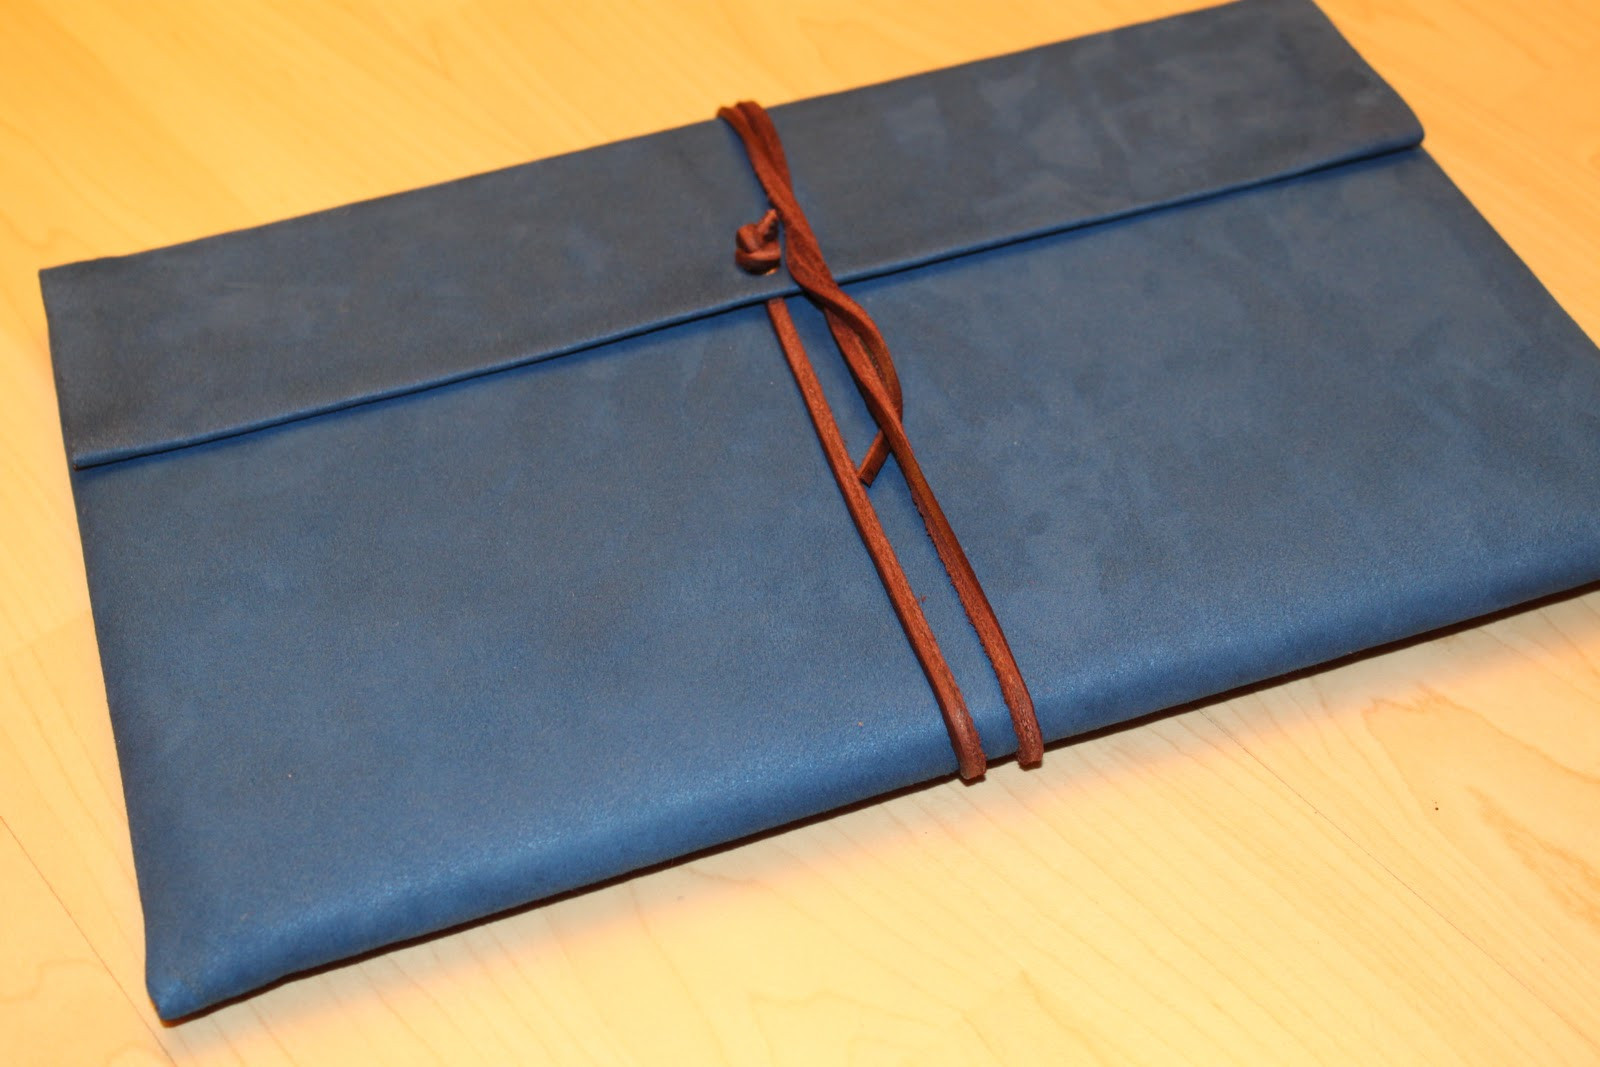 Best ideas about DIY Laptop Sleeve . Save or Pin ChaneCiaga DIY laptop sleeve Now.